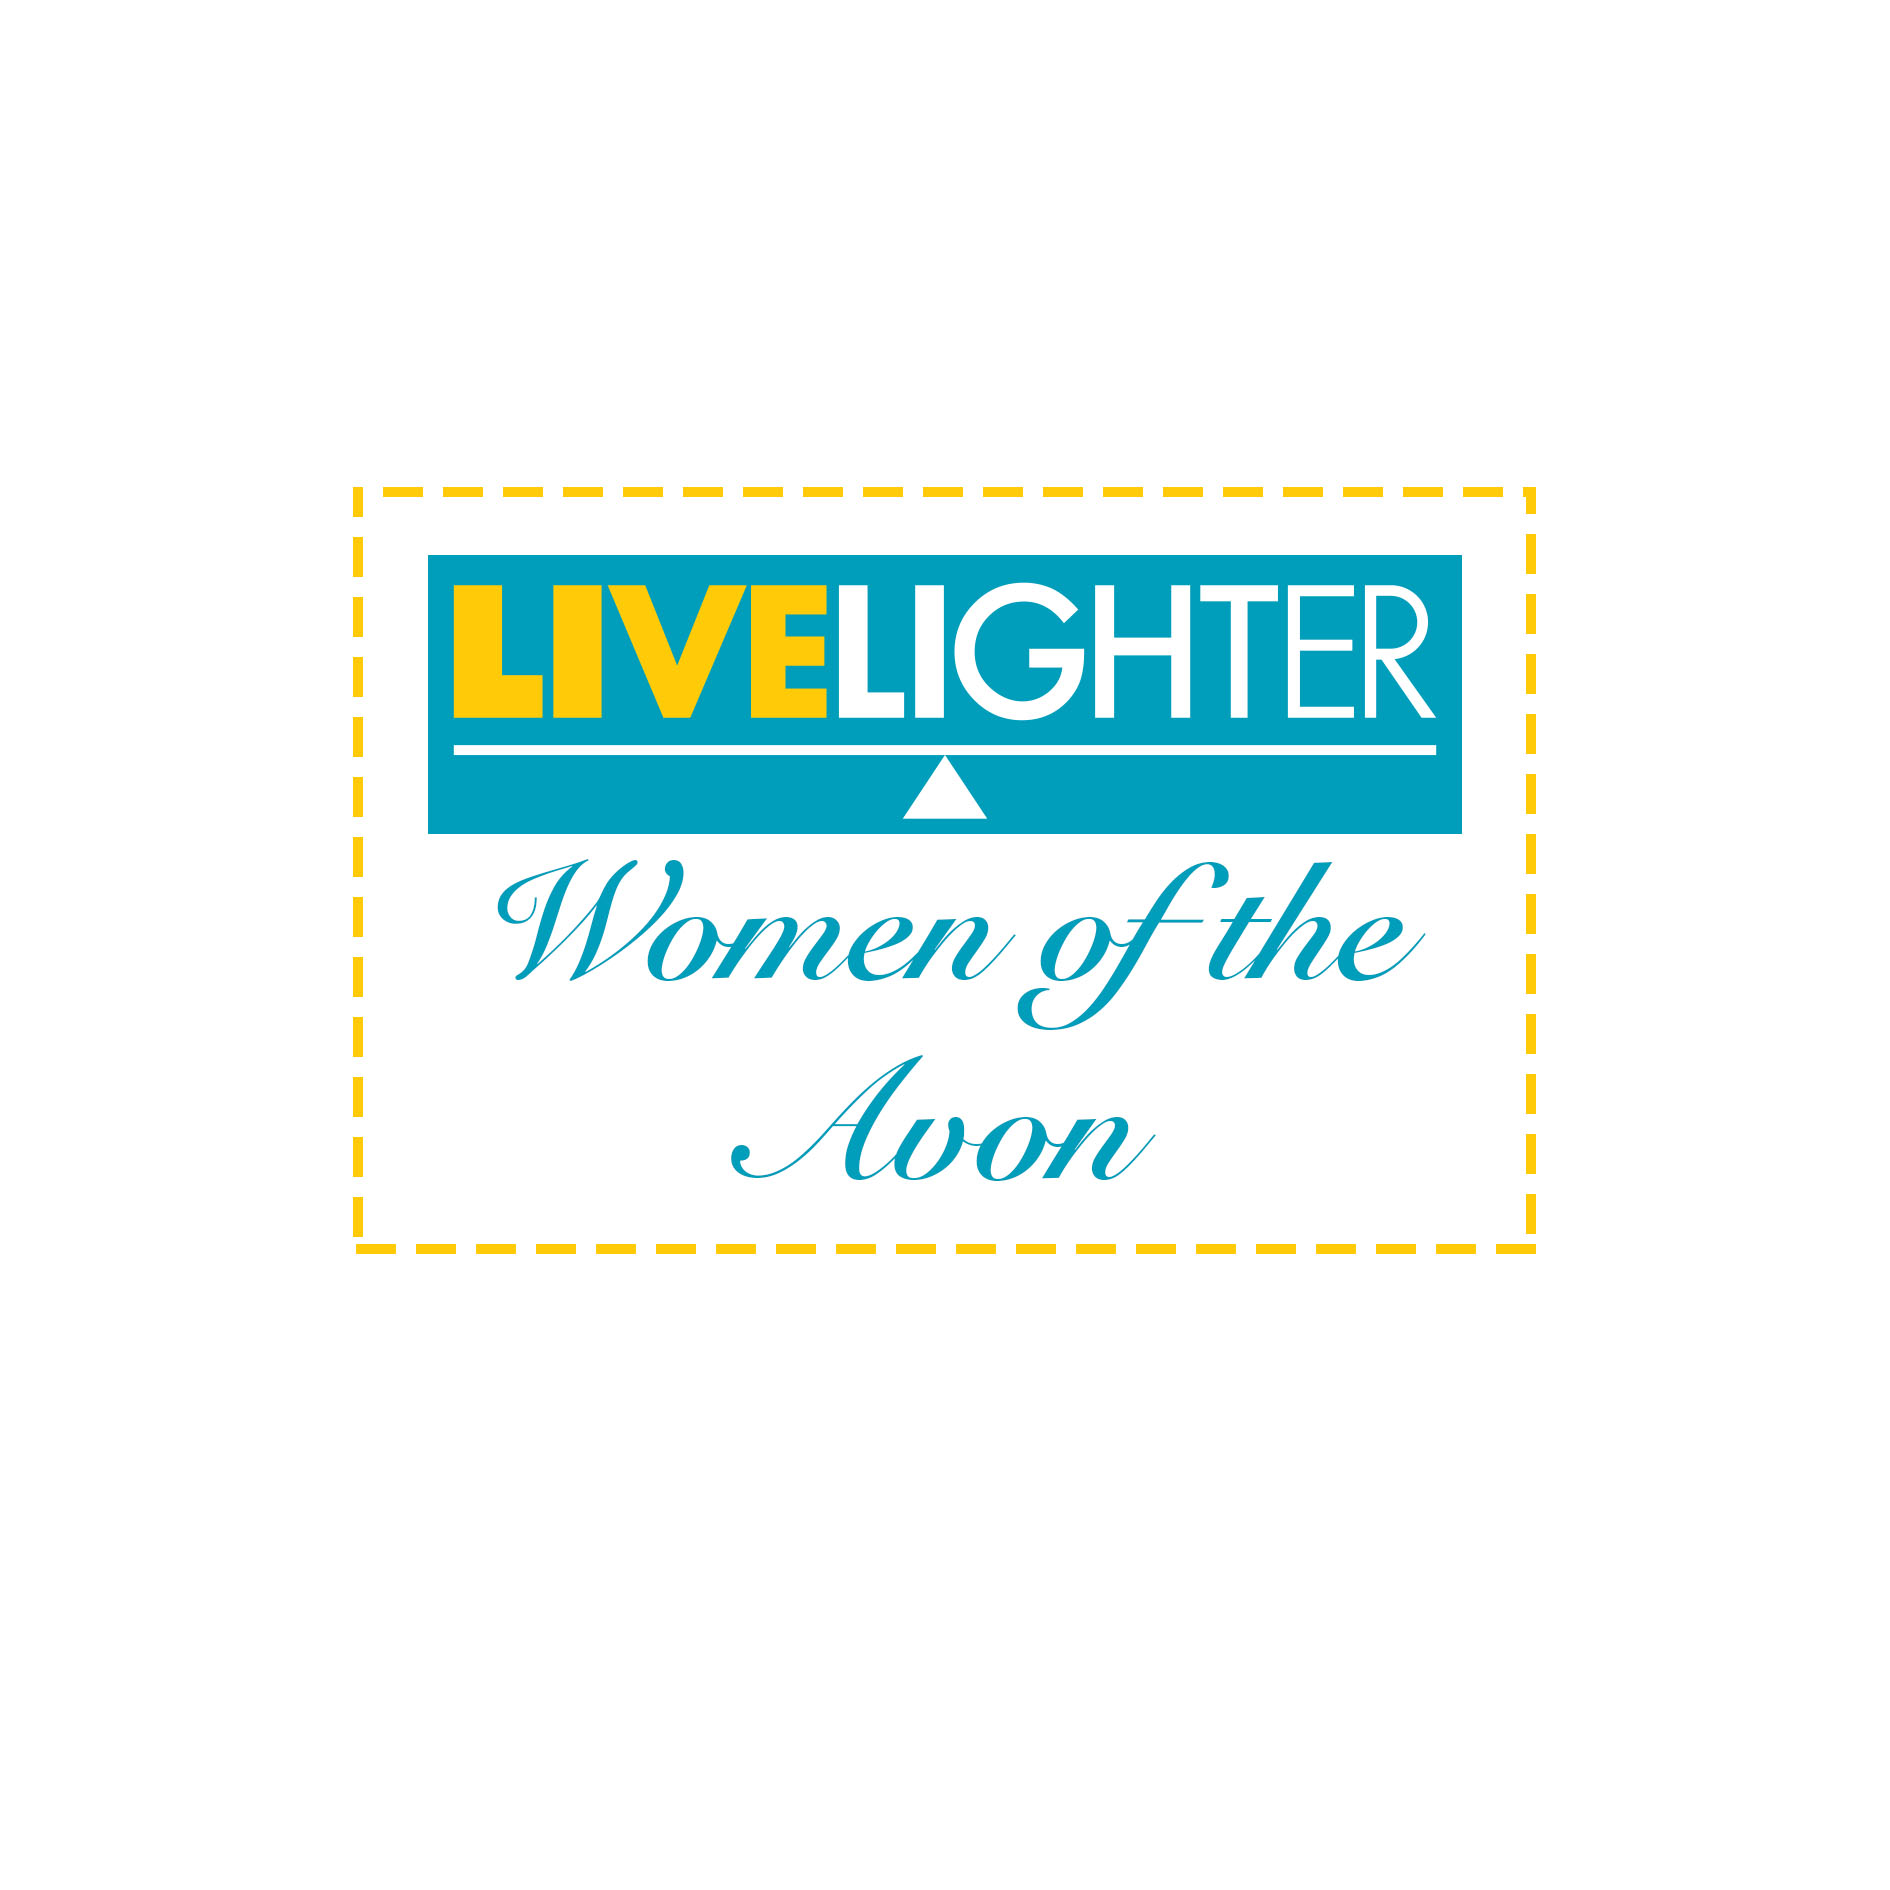 LiveLighter Women of the Avon